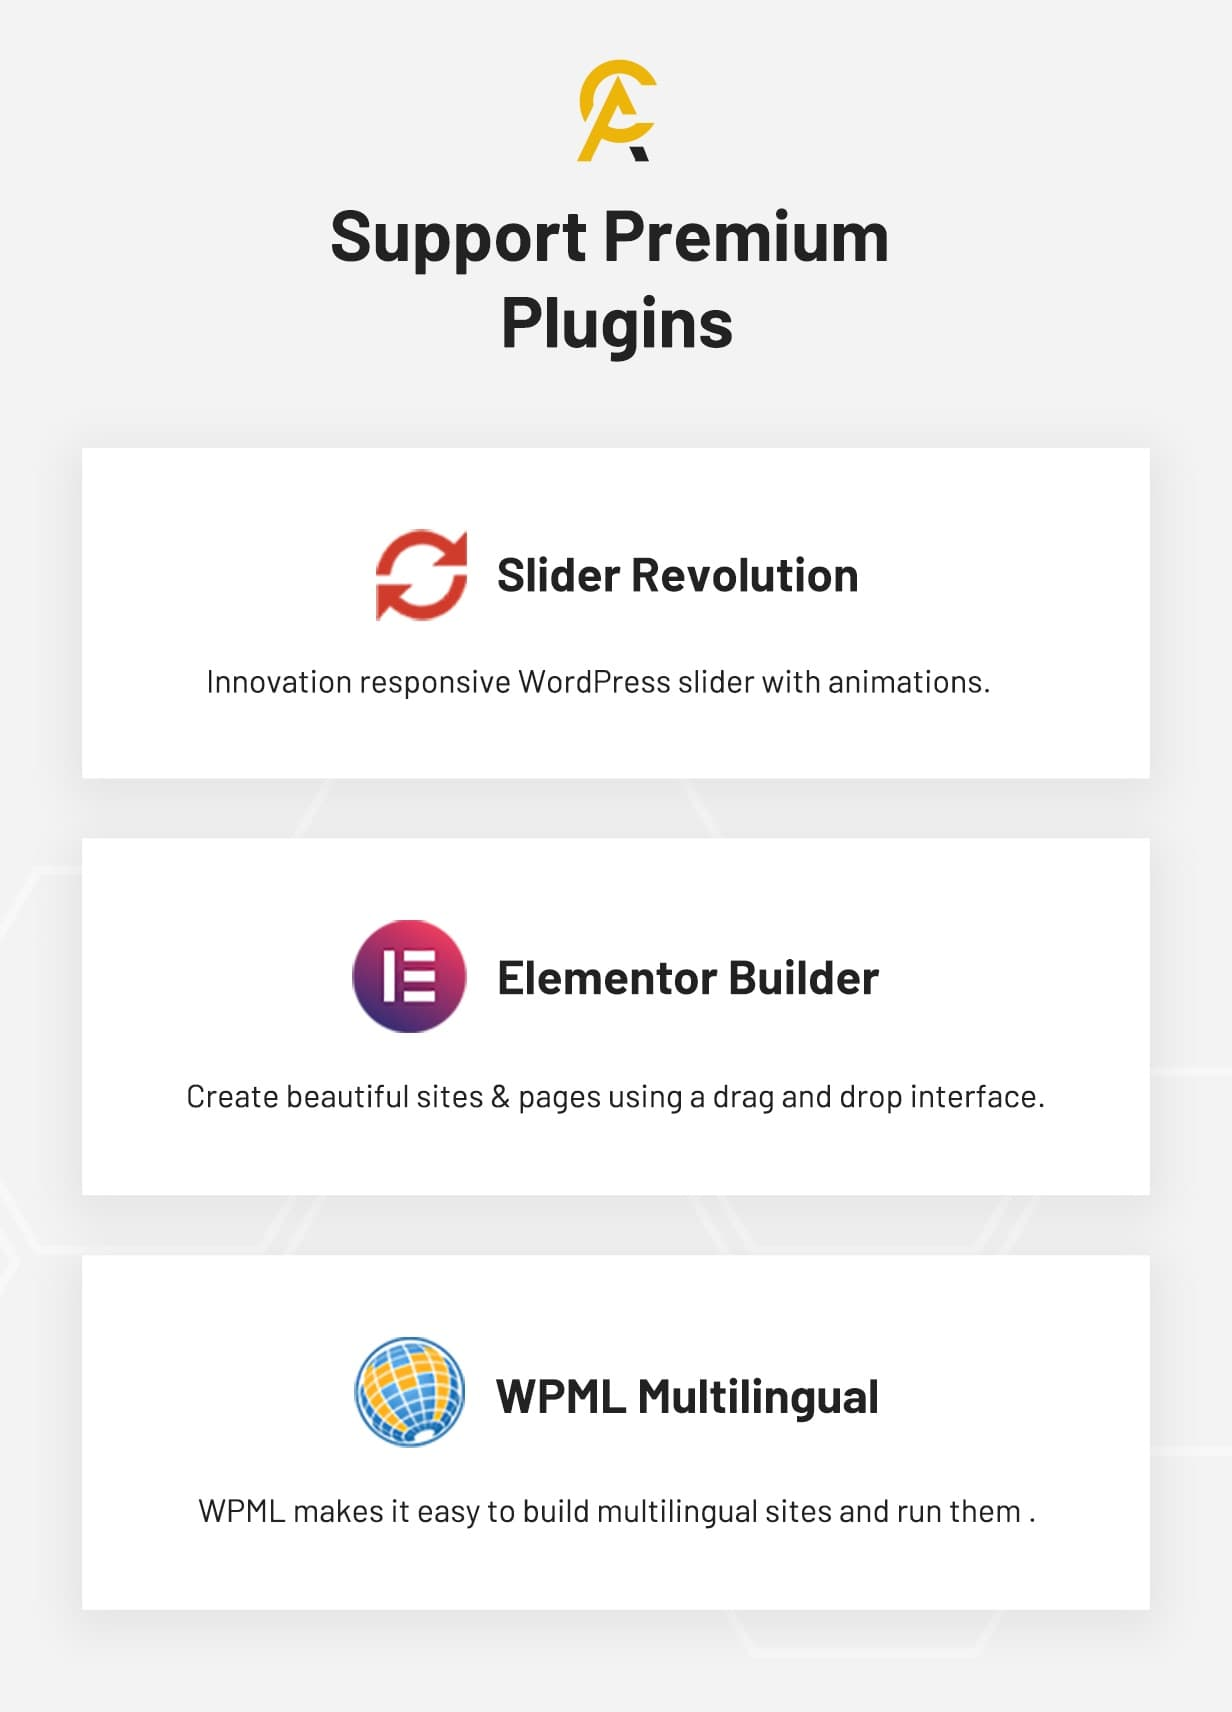 Antek - Support Premium Plugins